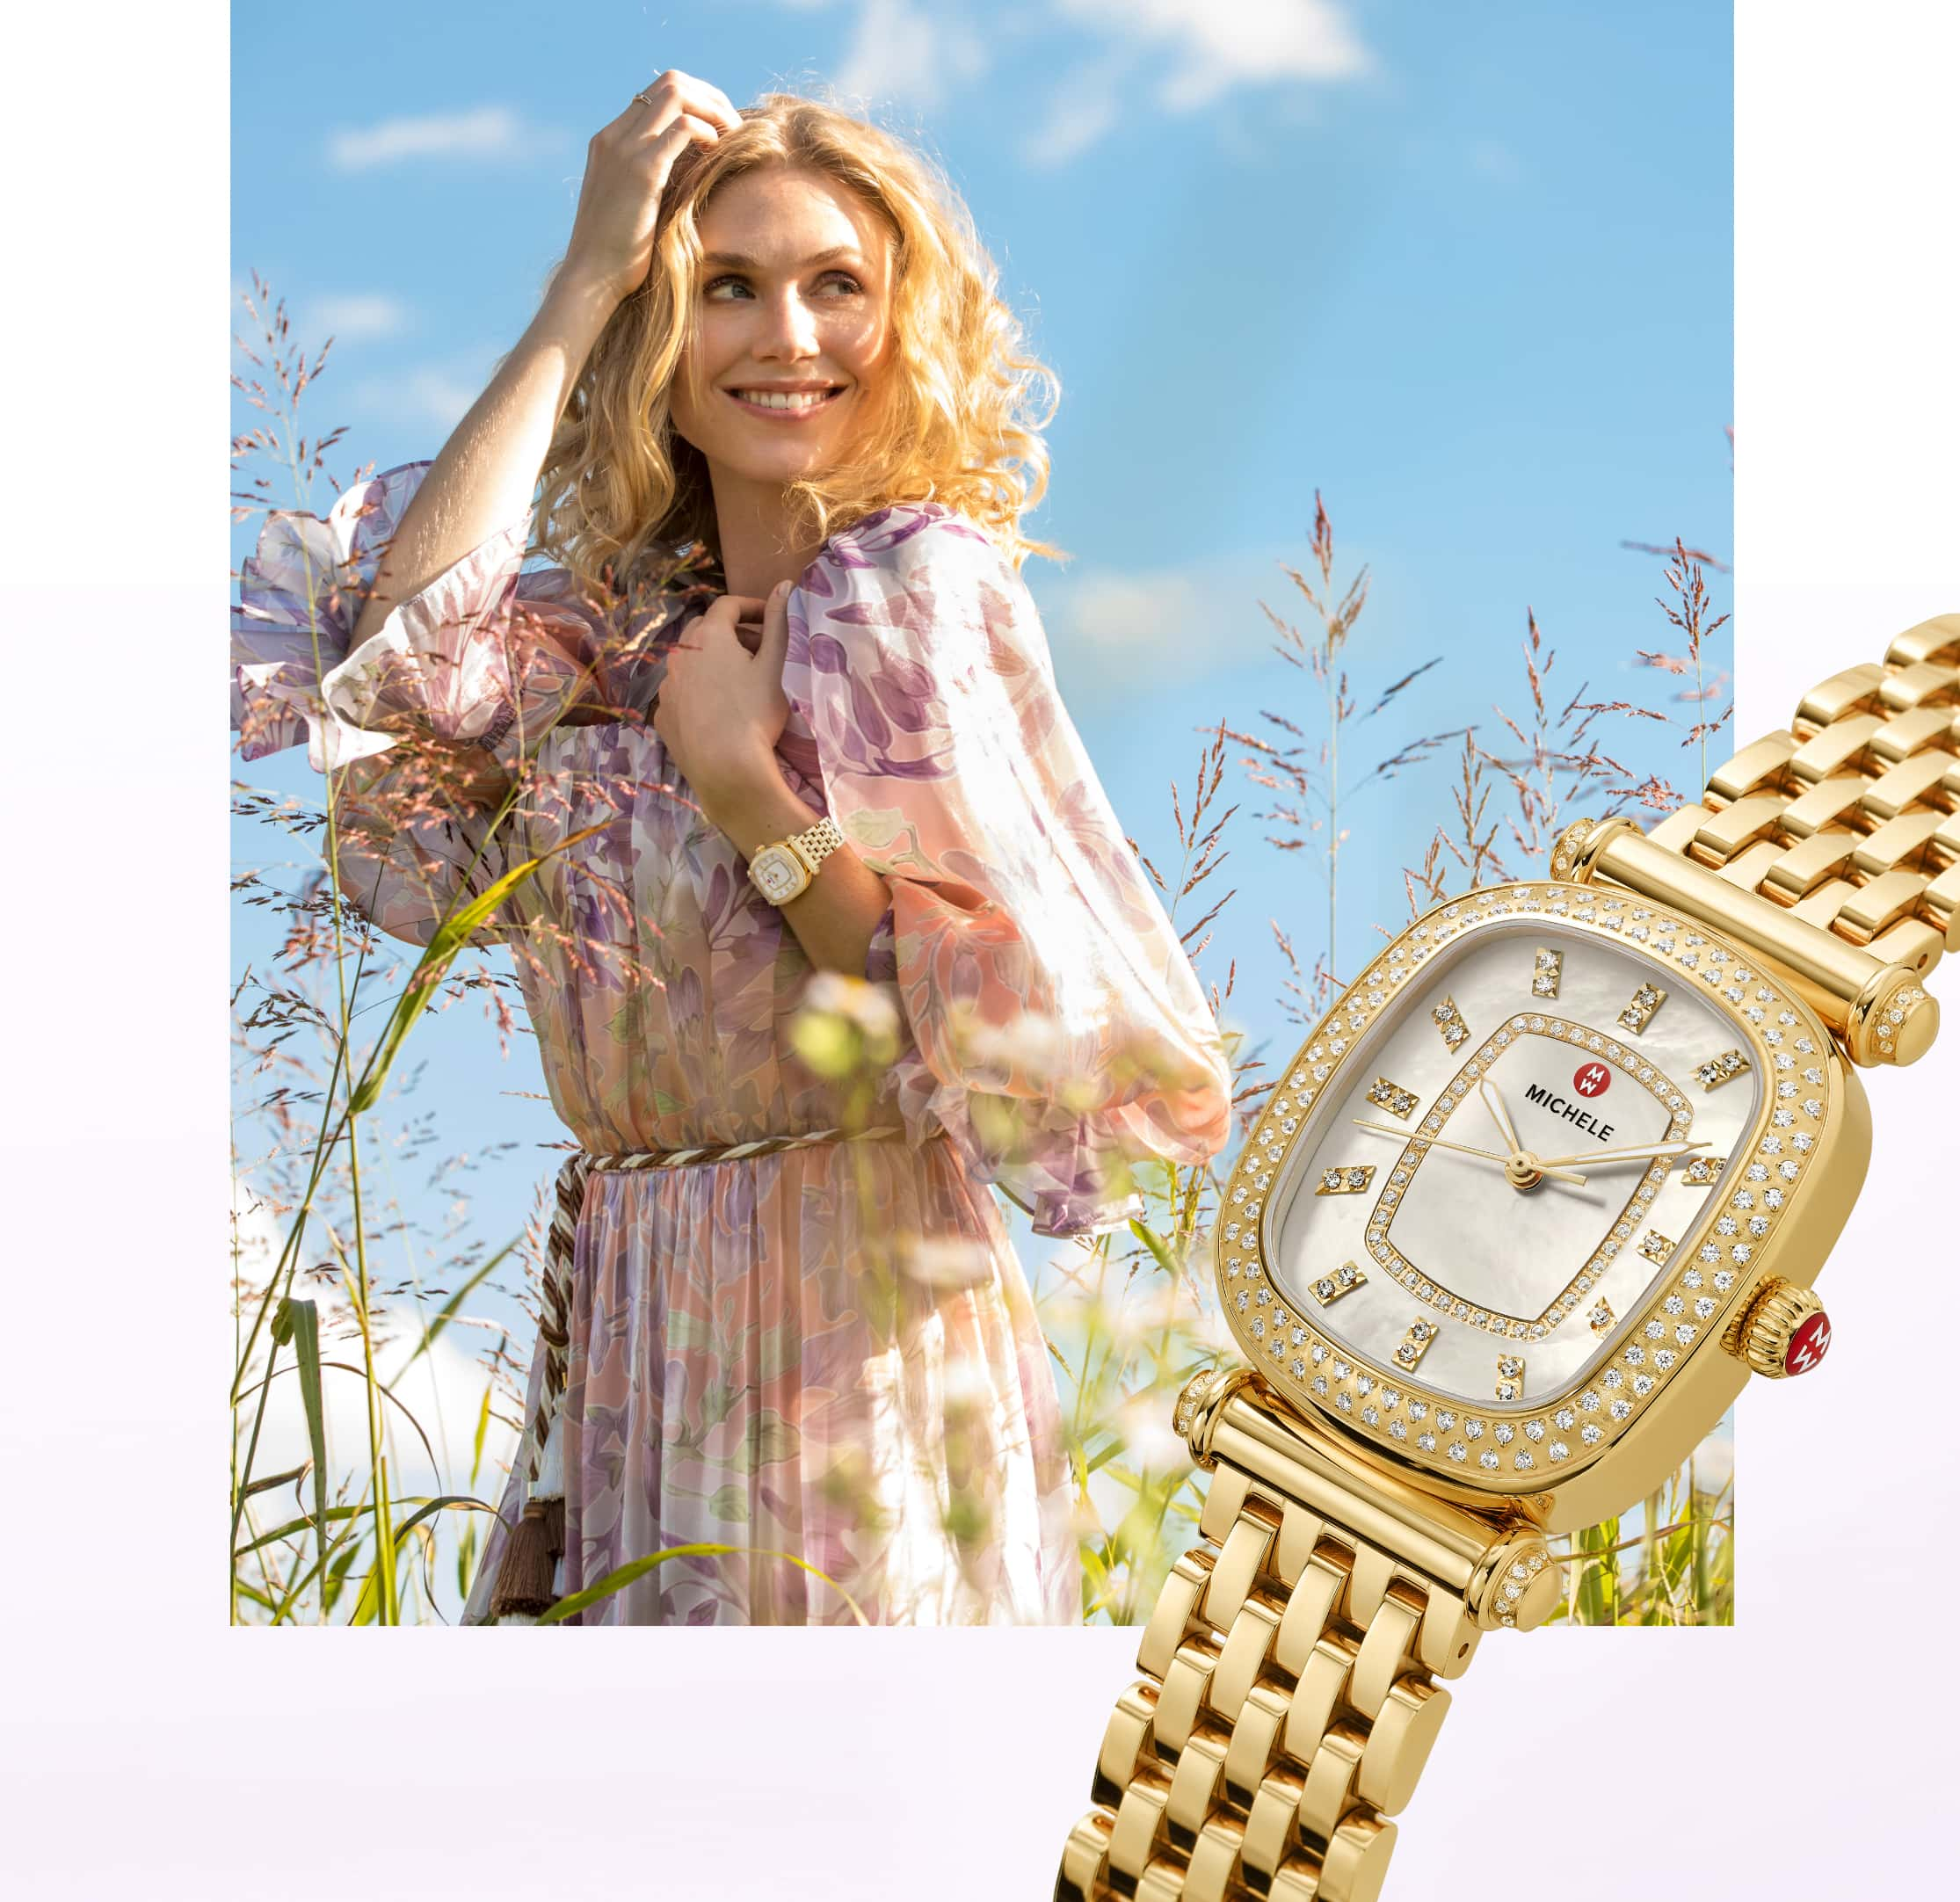 Fashionable woman in field of flowers wearing 18K gold-tone Caber Isle watch.